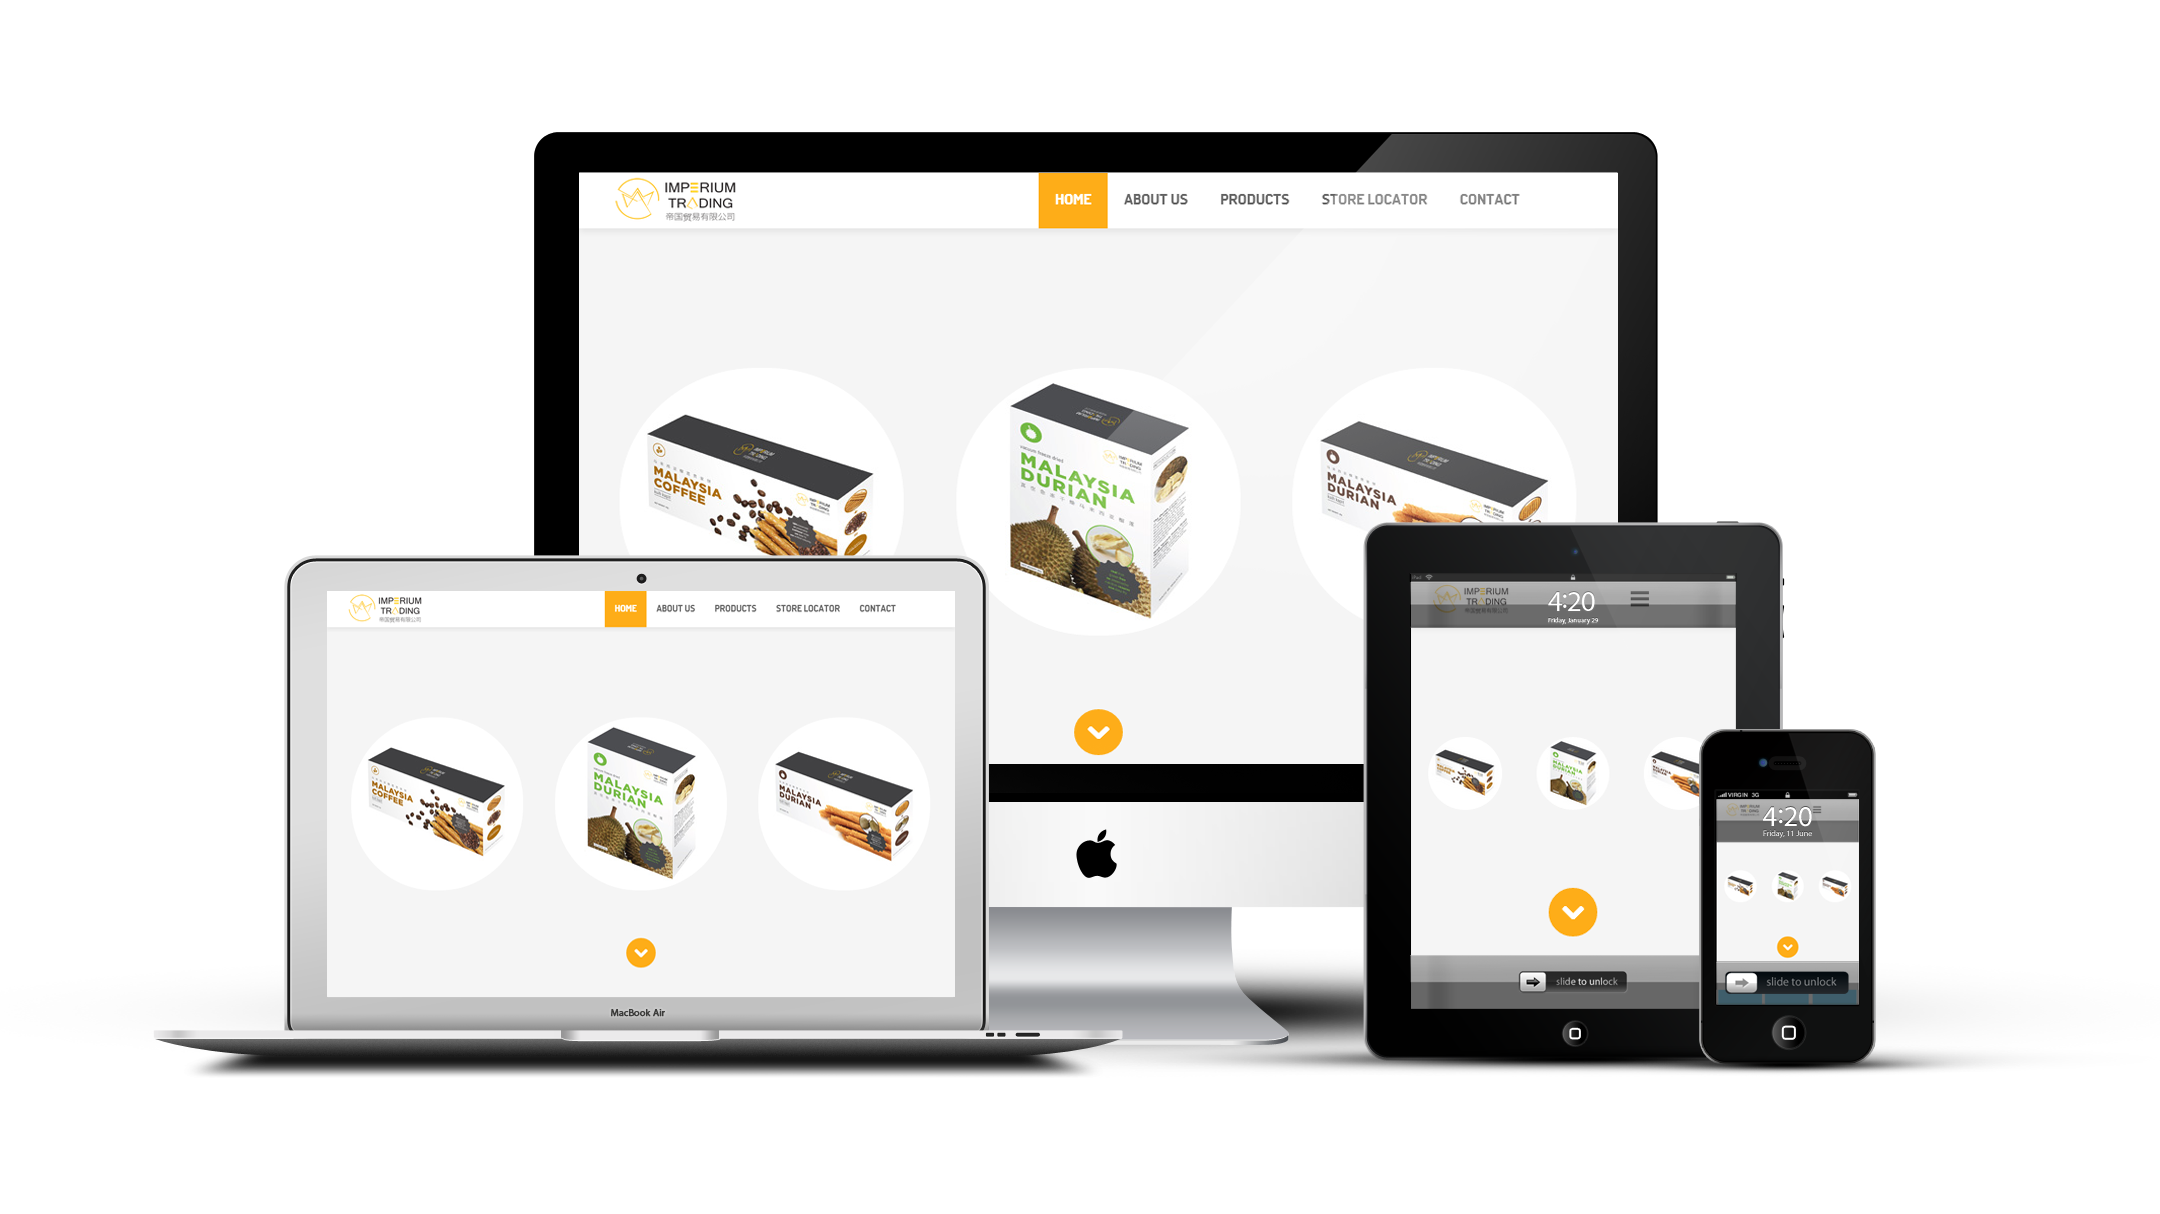 Responsive website design for Imperium Trading which specialized in trading consumer products and currently venture into snacks industry, Subang Jaya, Malaysia.  Visit: www.imperium.my